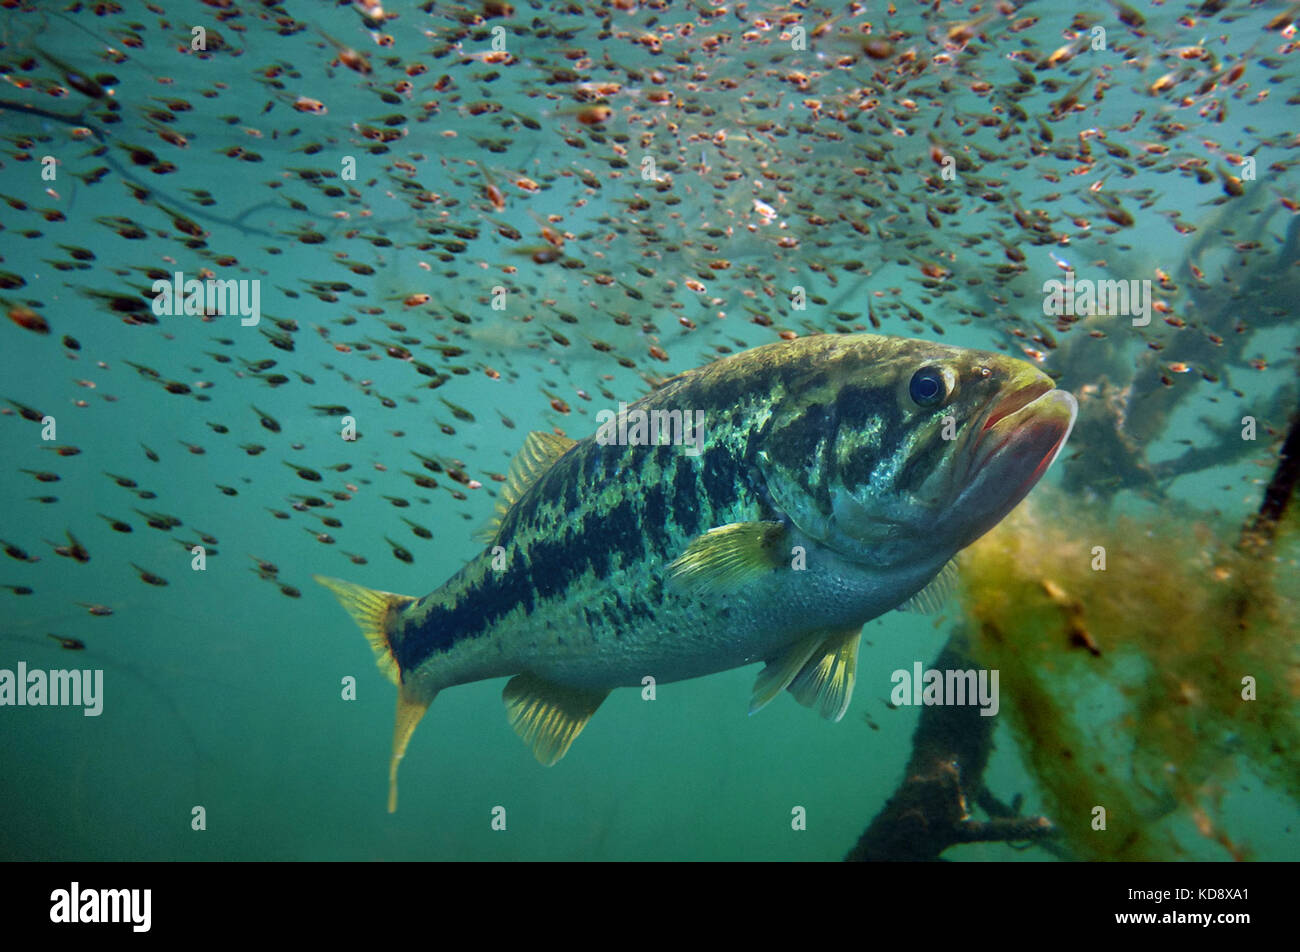 Largemouth bass, Micropterus salmoides. Male guarding newborn baby fry. The male will stay with the infant bass - Stock Image